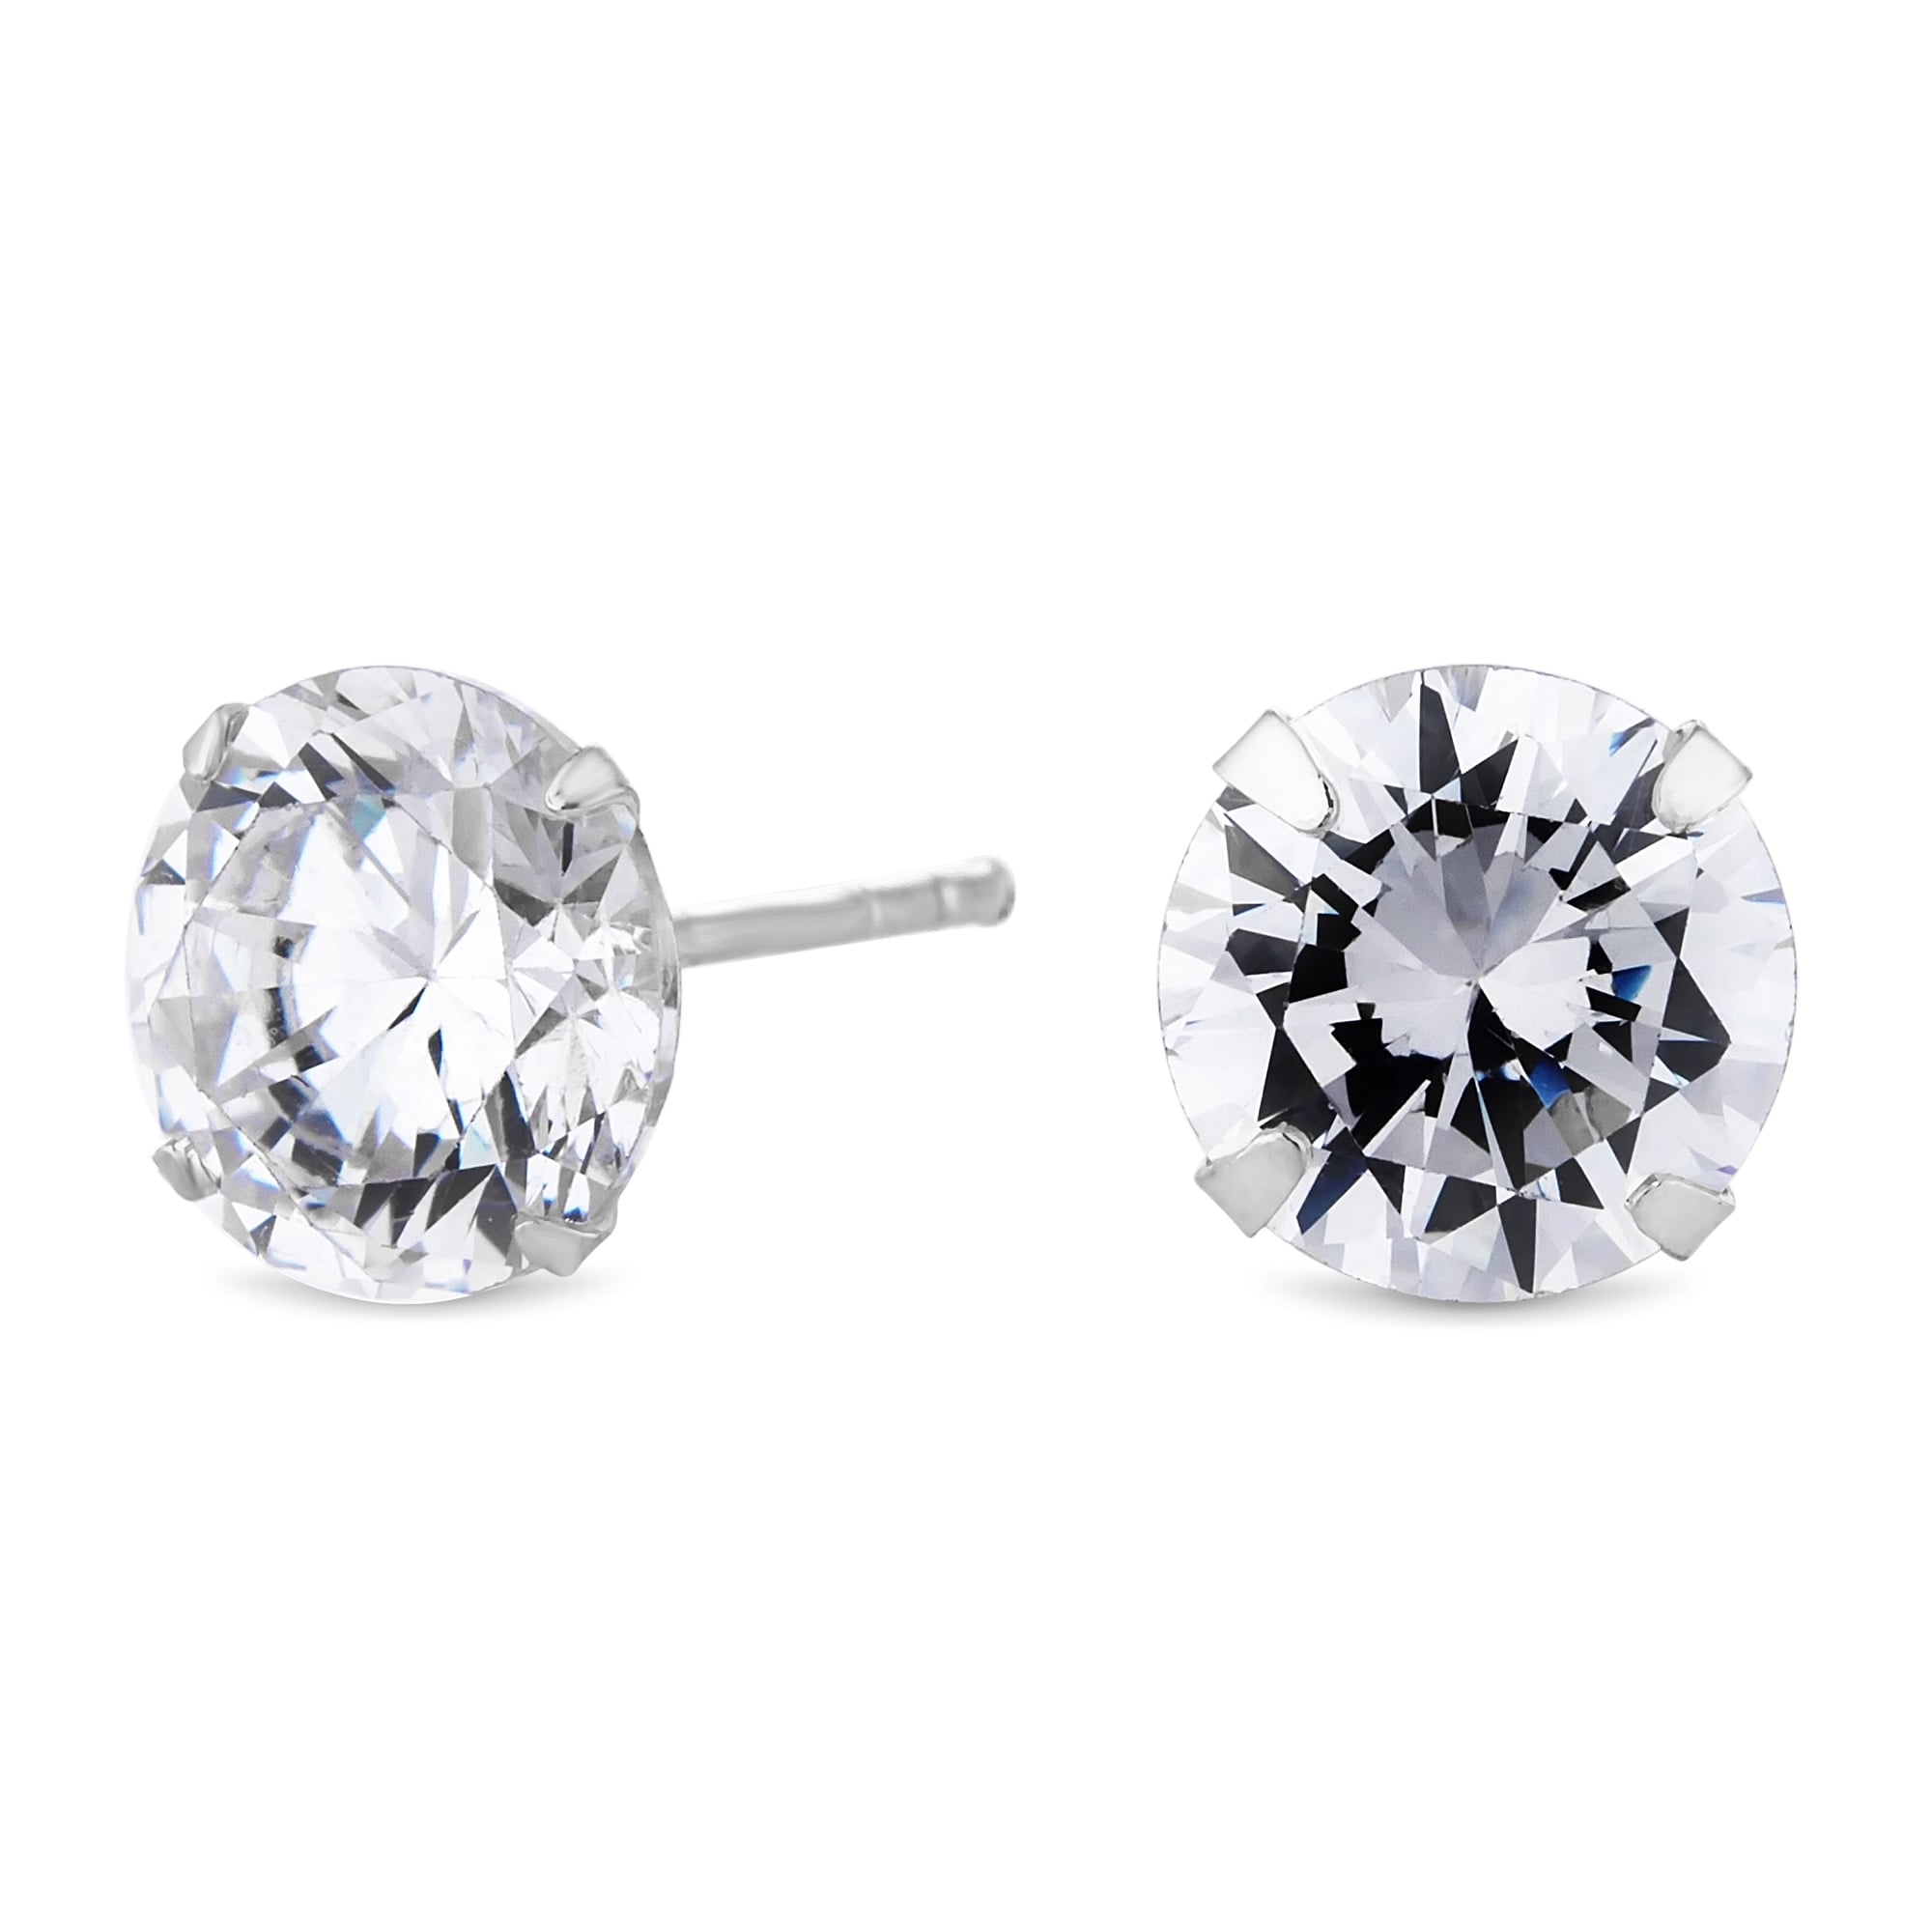 products leaf jewelry clover sterling stud gift earrings cubic silver zirconia